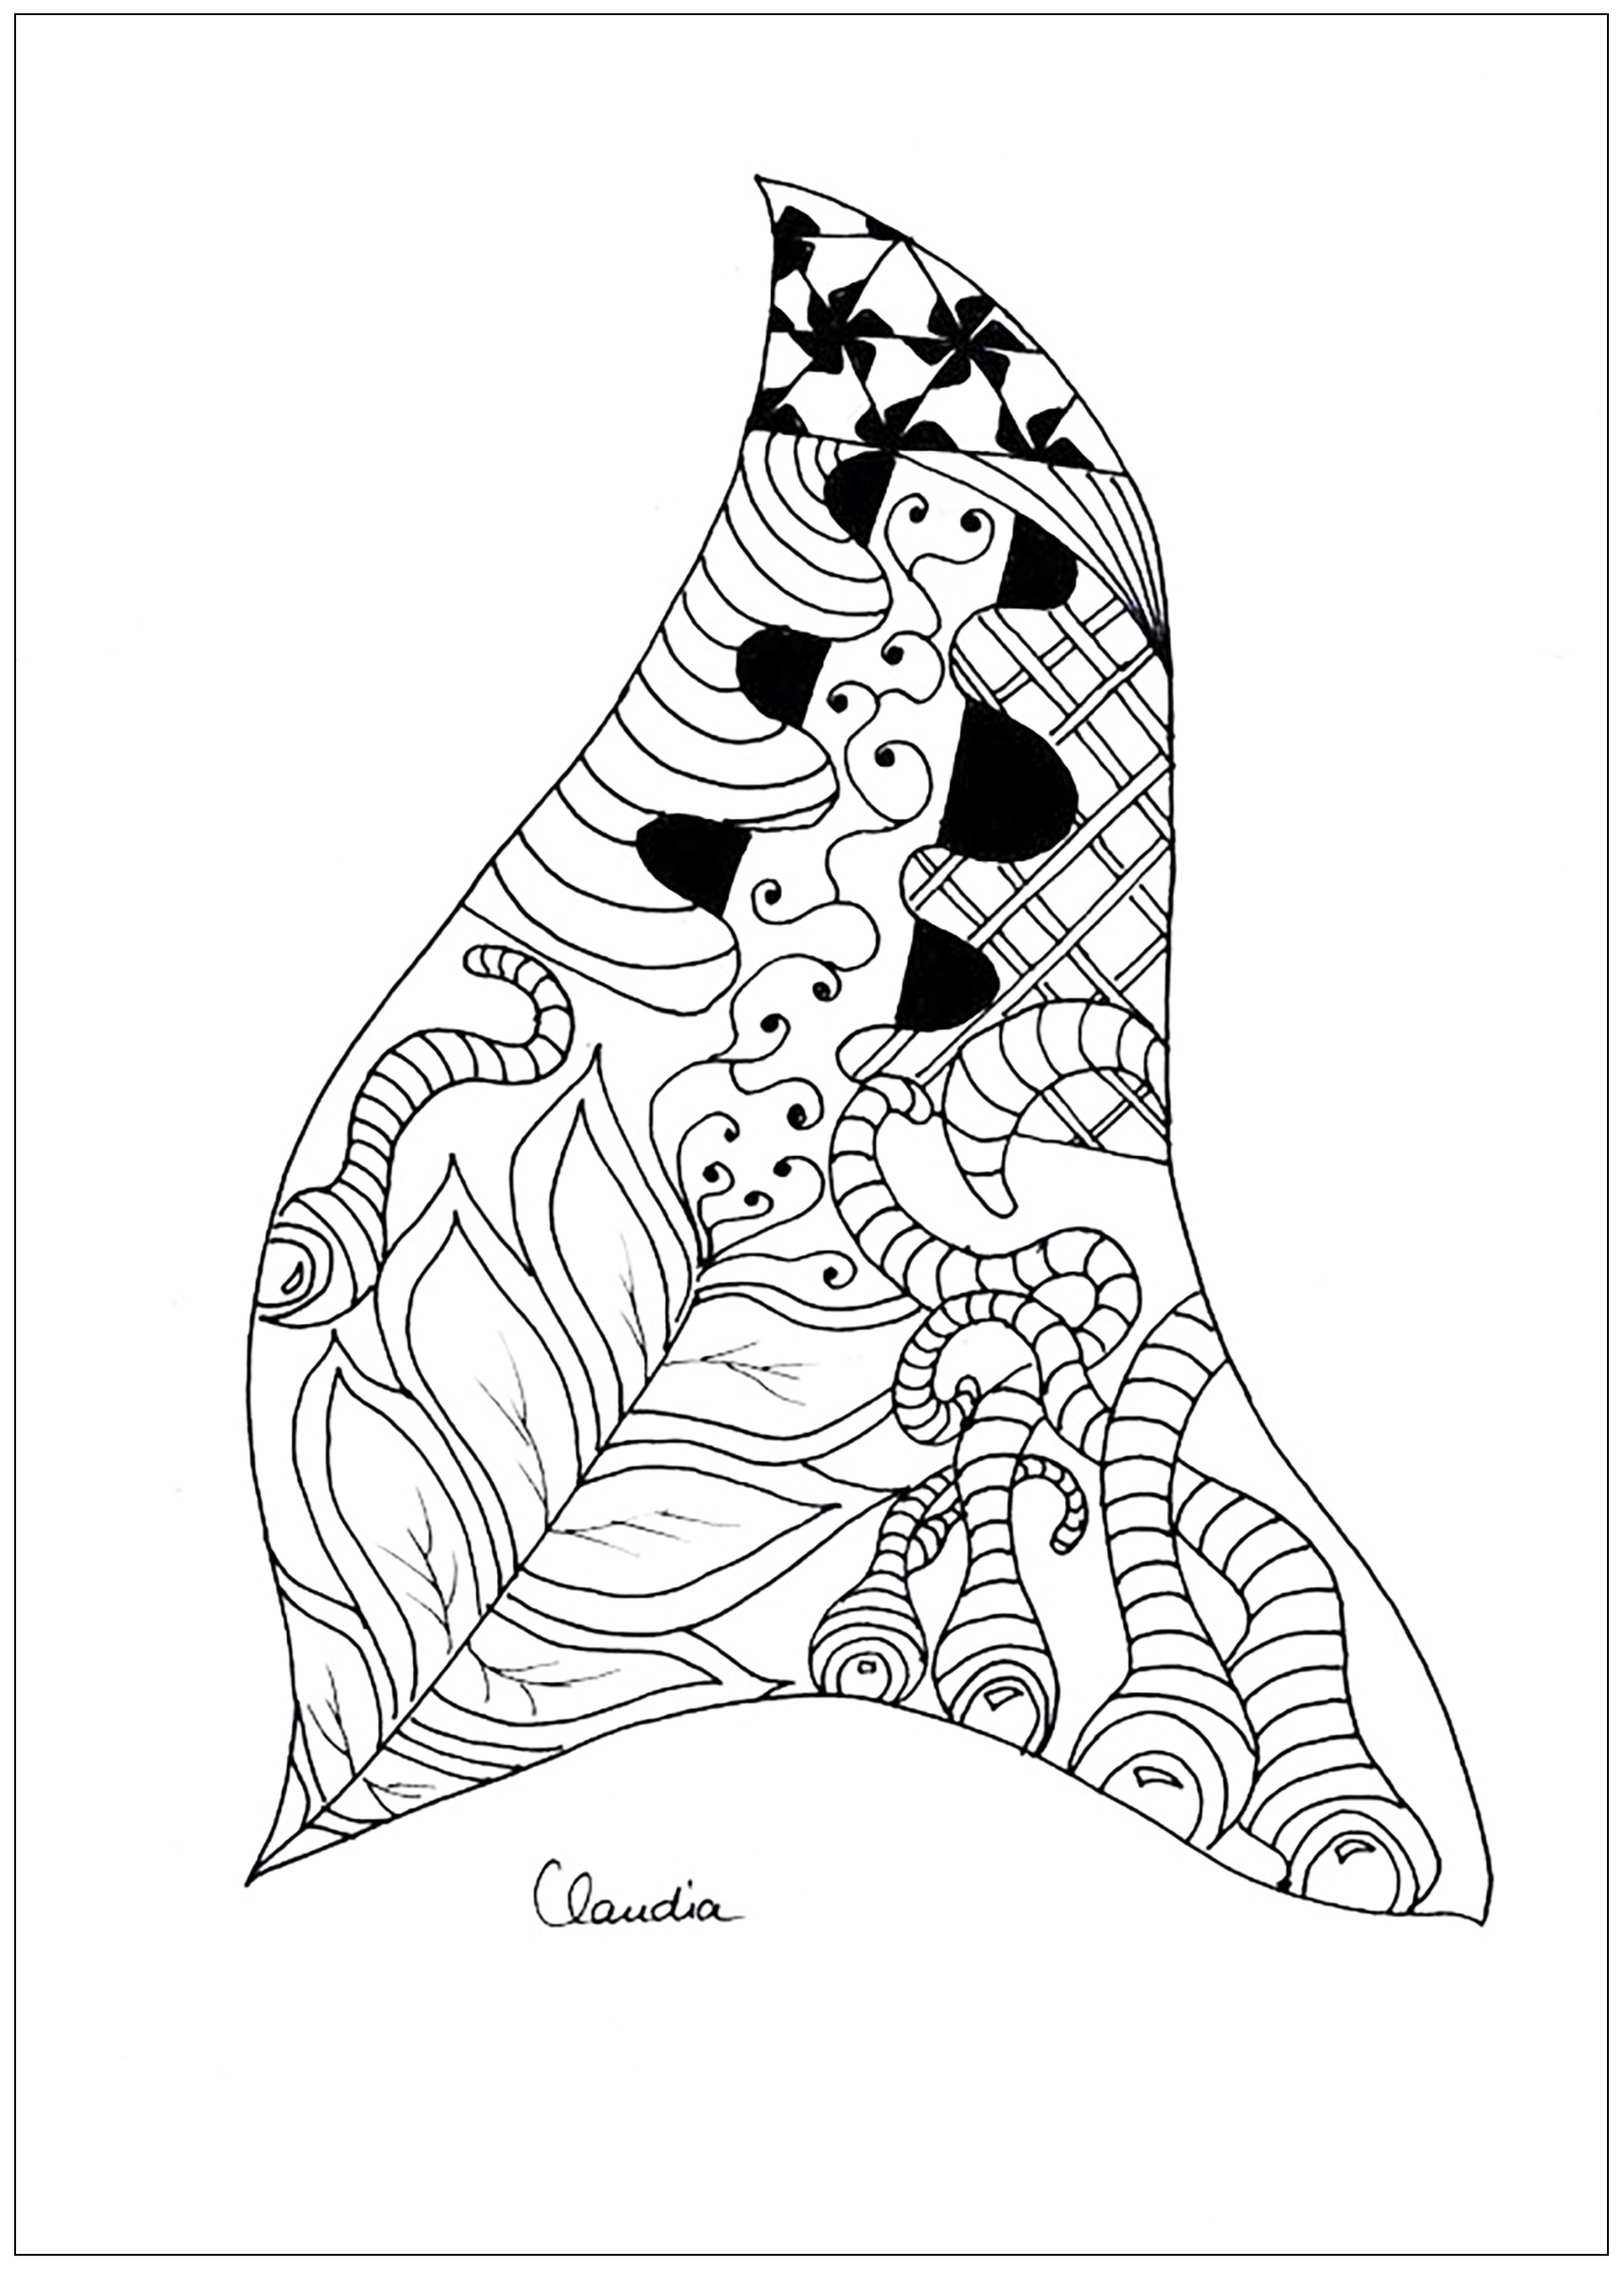 coloring book for adults easy simple coloring pages for adults coloring pages for adults easy coloring book